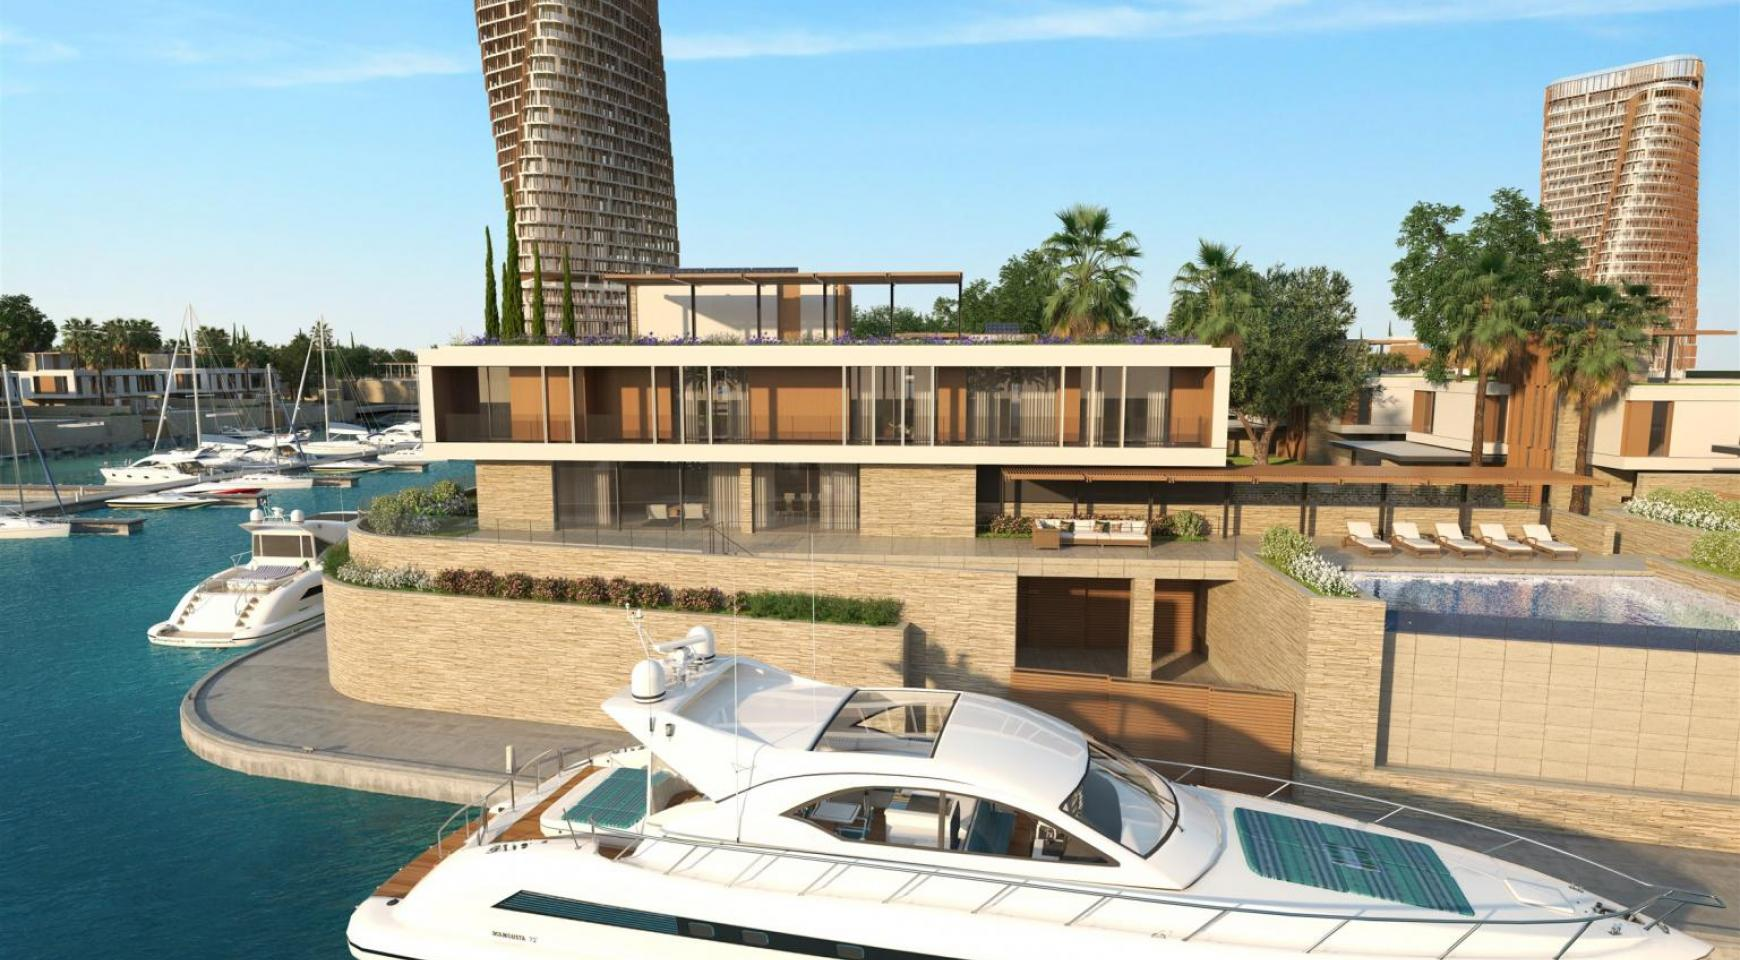 Stunning 5 Bedroom Villa in an Exclusive Project by the Sea - 4